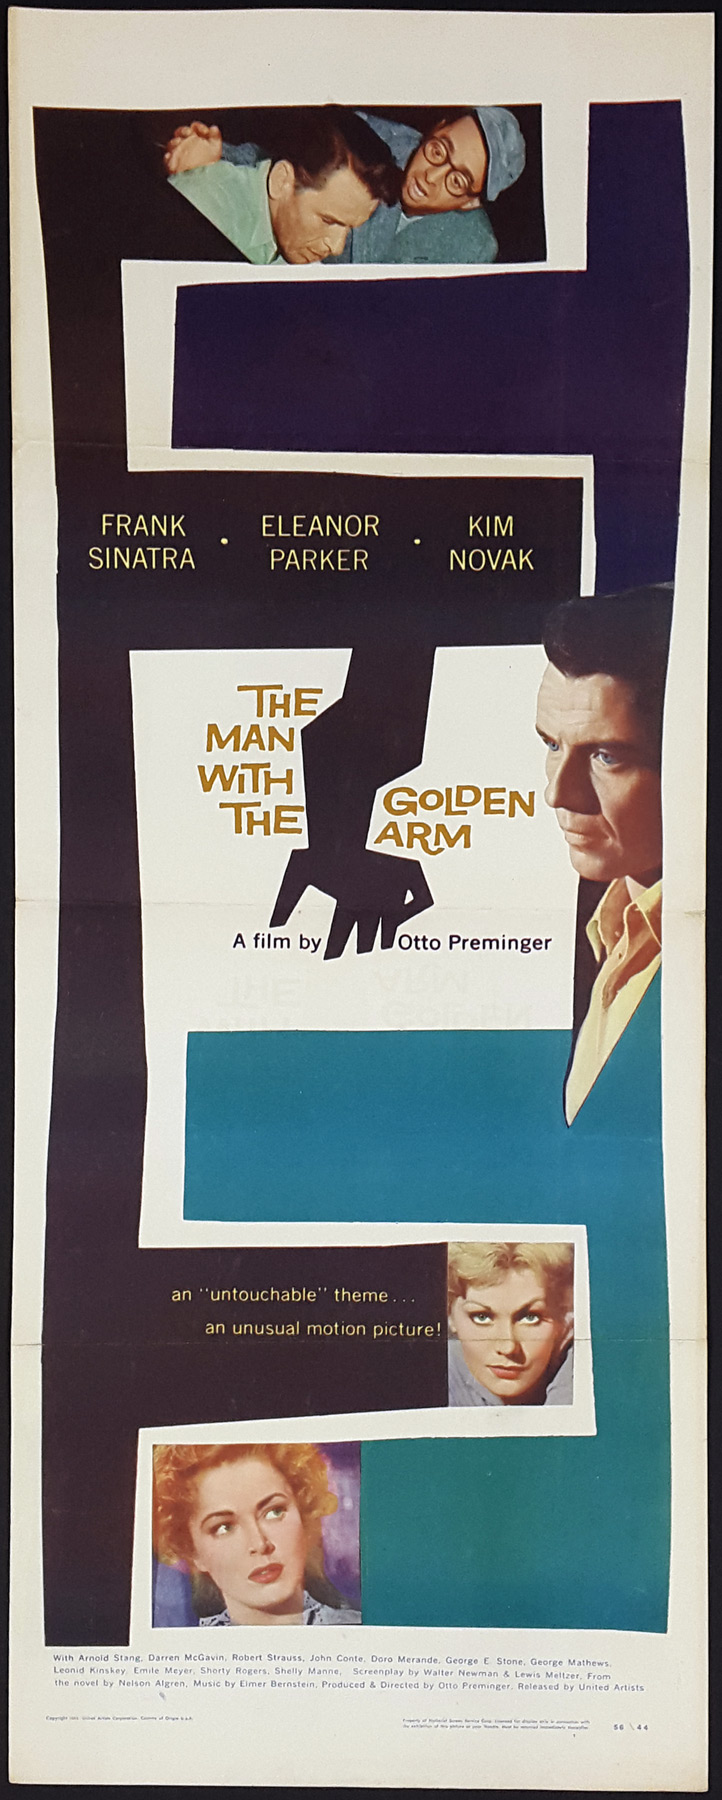 The man WITH THE GOLDEN ARM Movie Poster FRANK SINATRA USA 1955 24X36 Drama